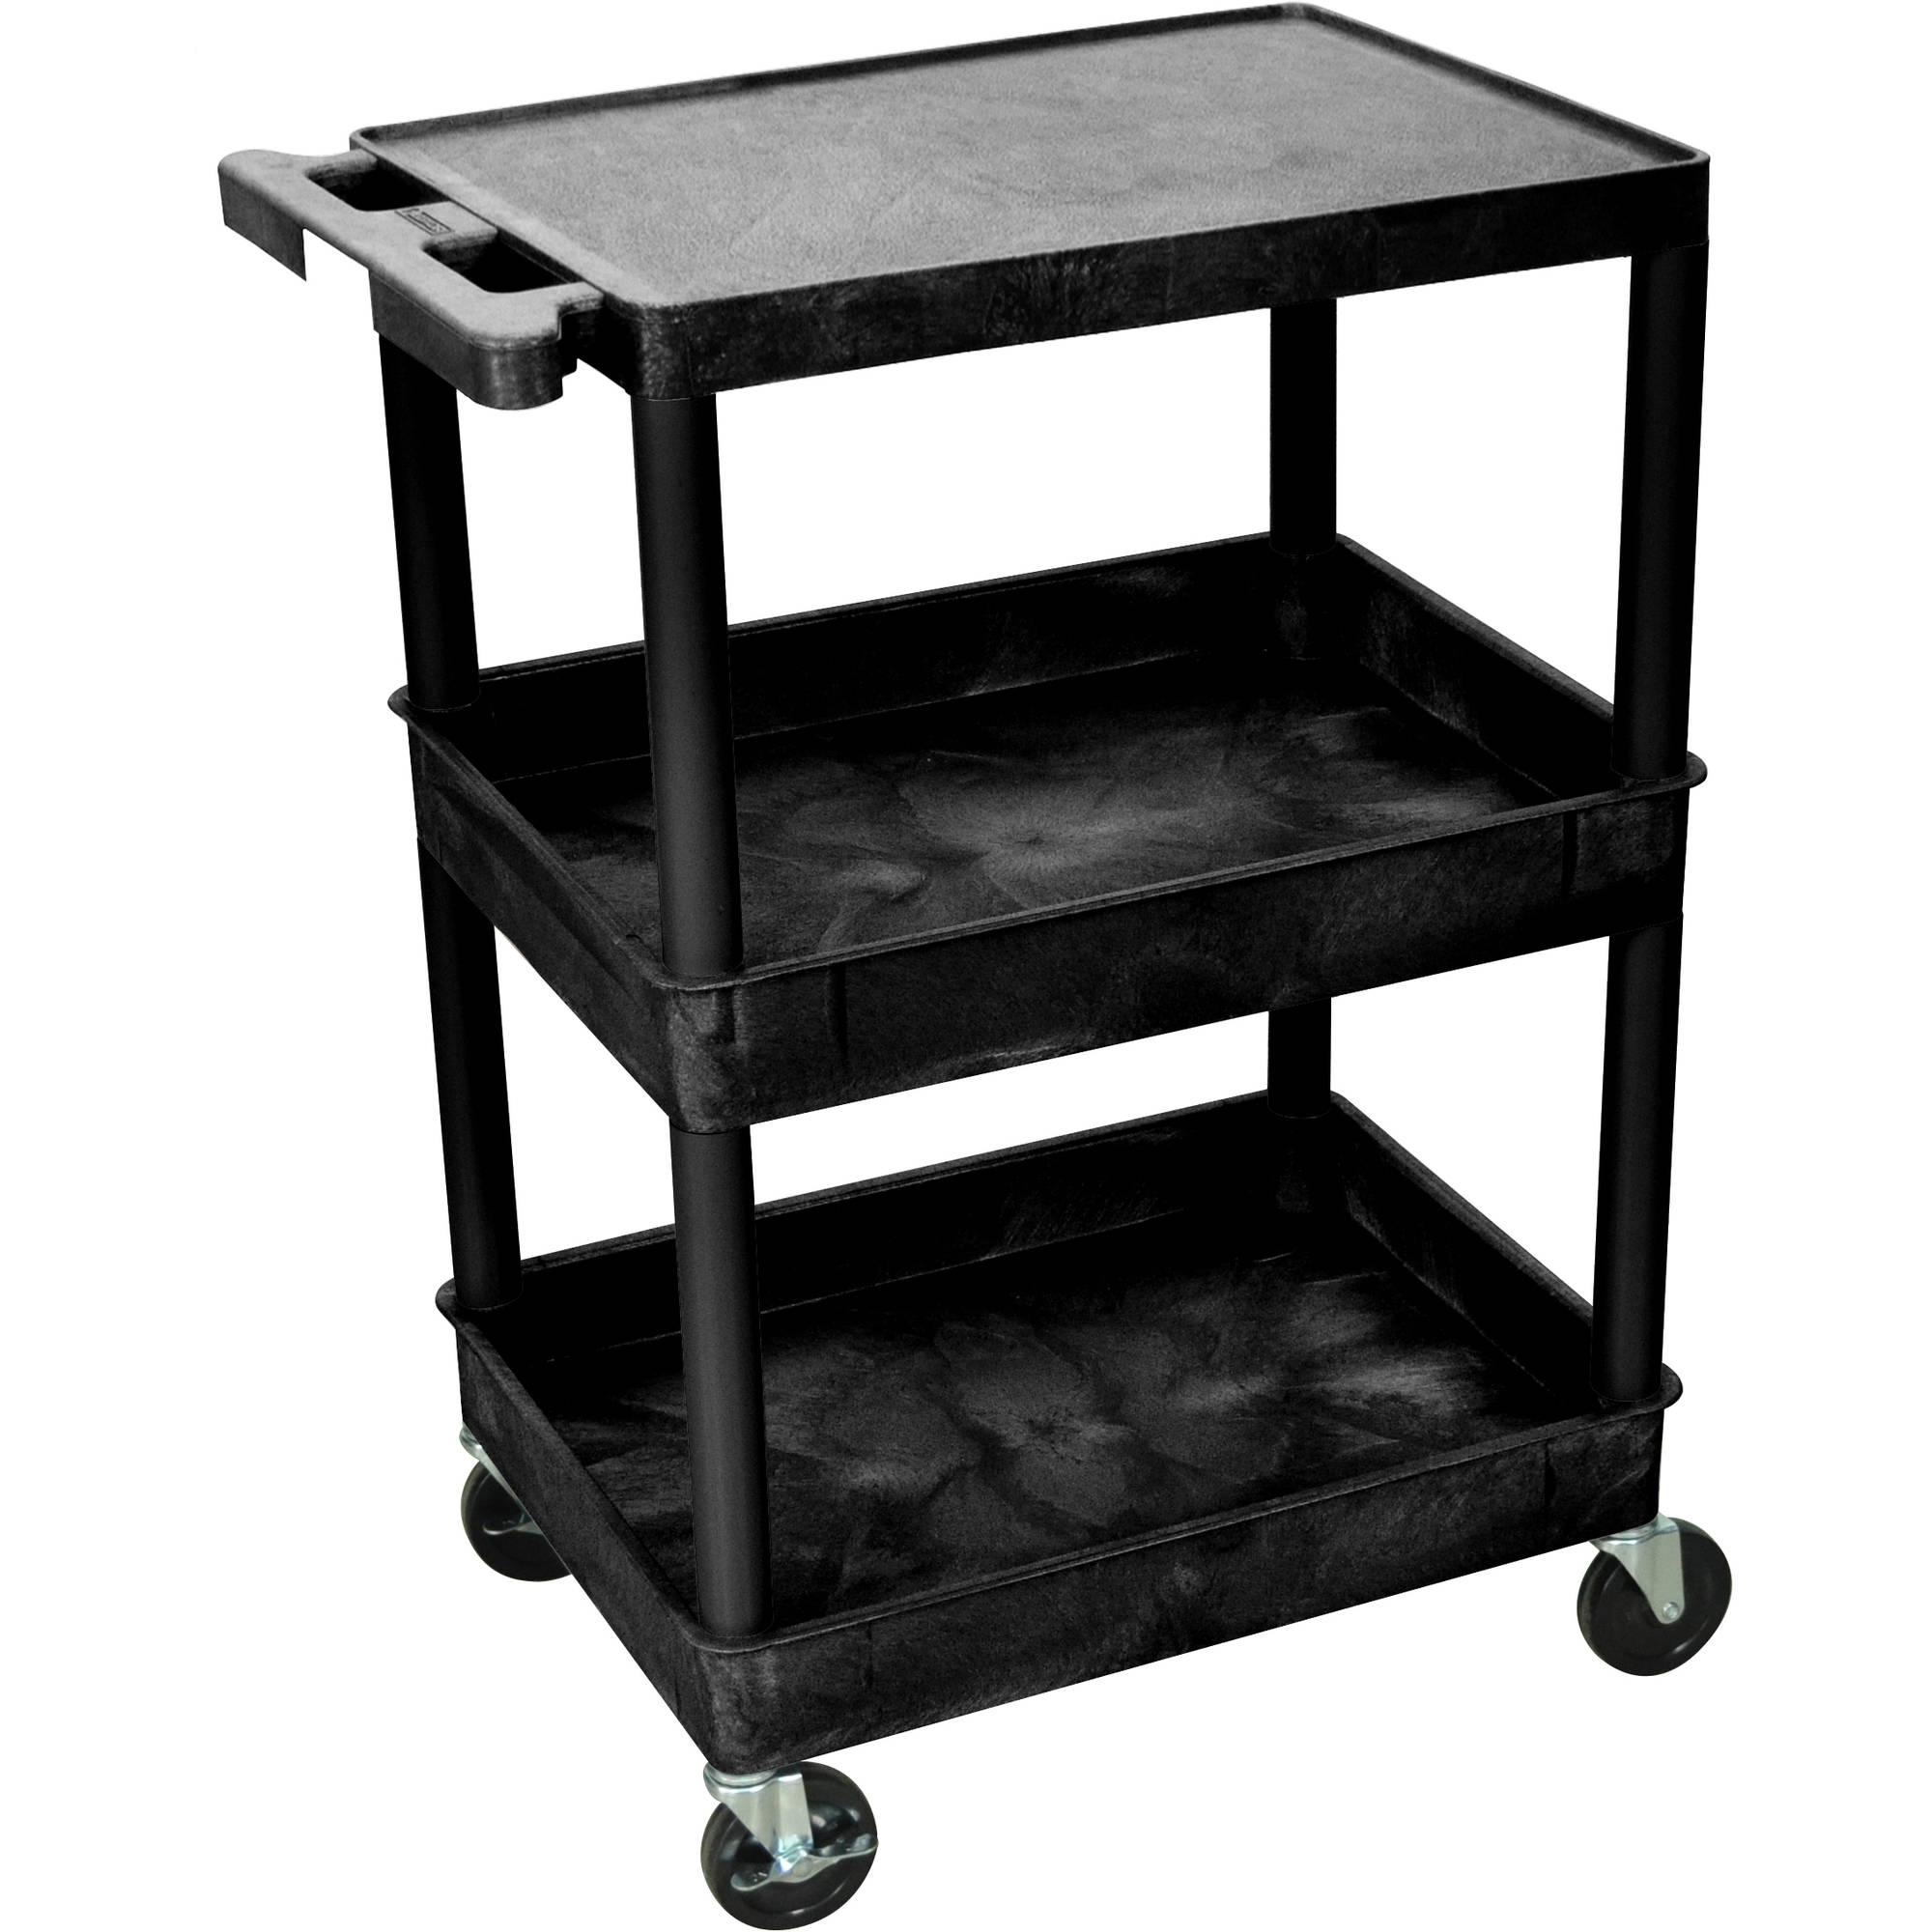 Luxor Flat Top and Tub Middle and Bottom Shelves Cart